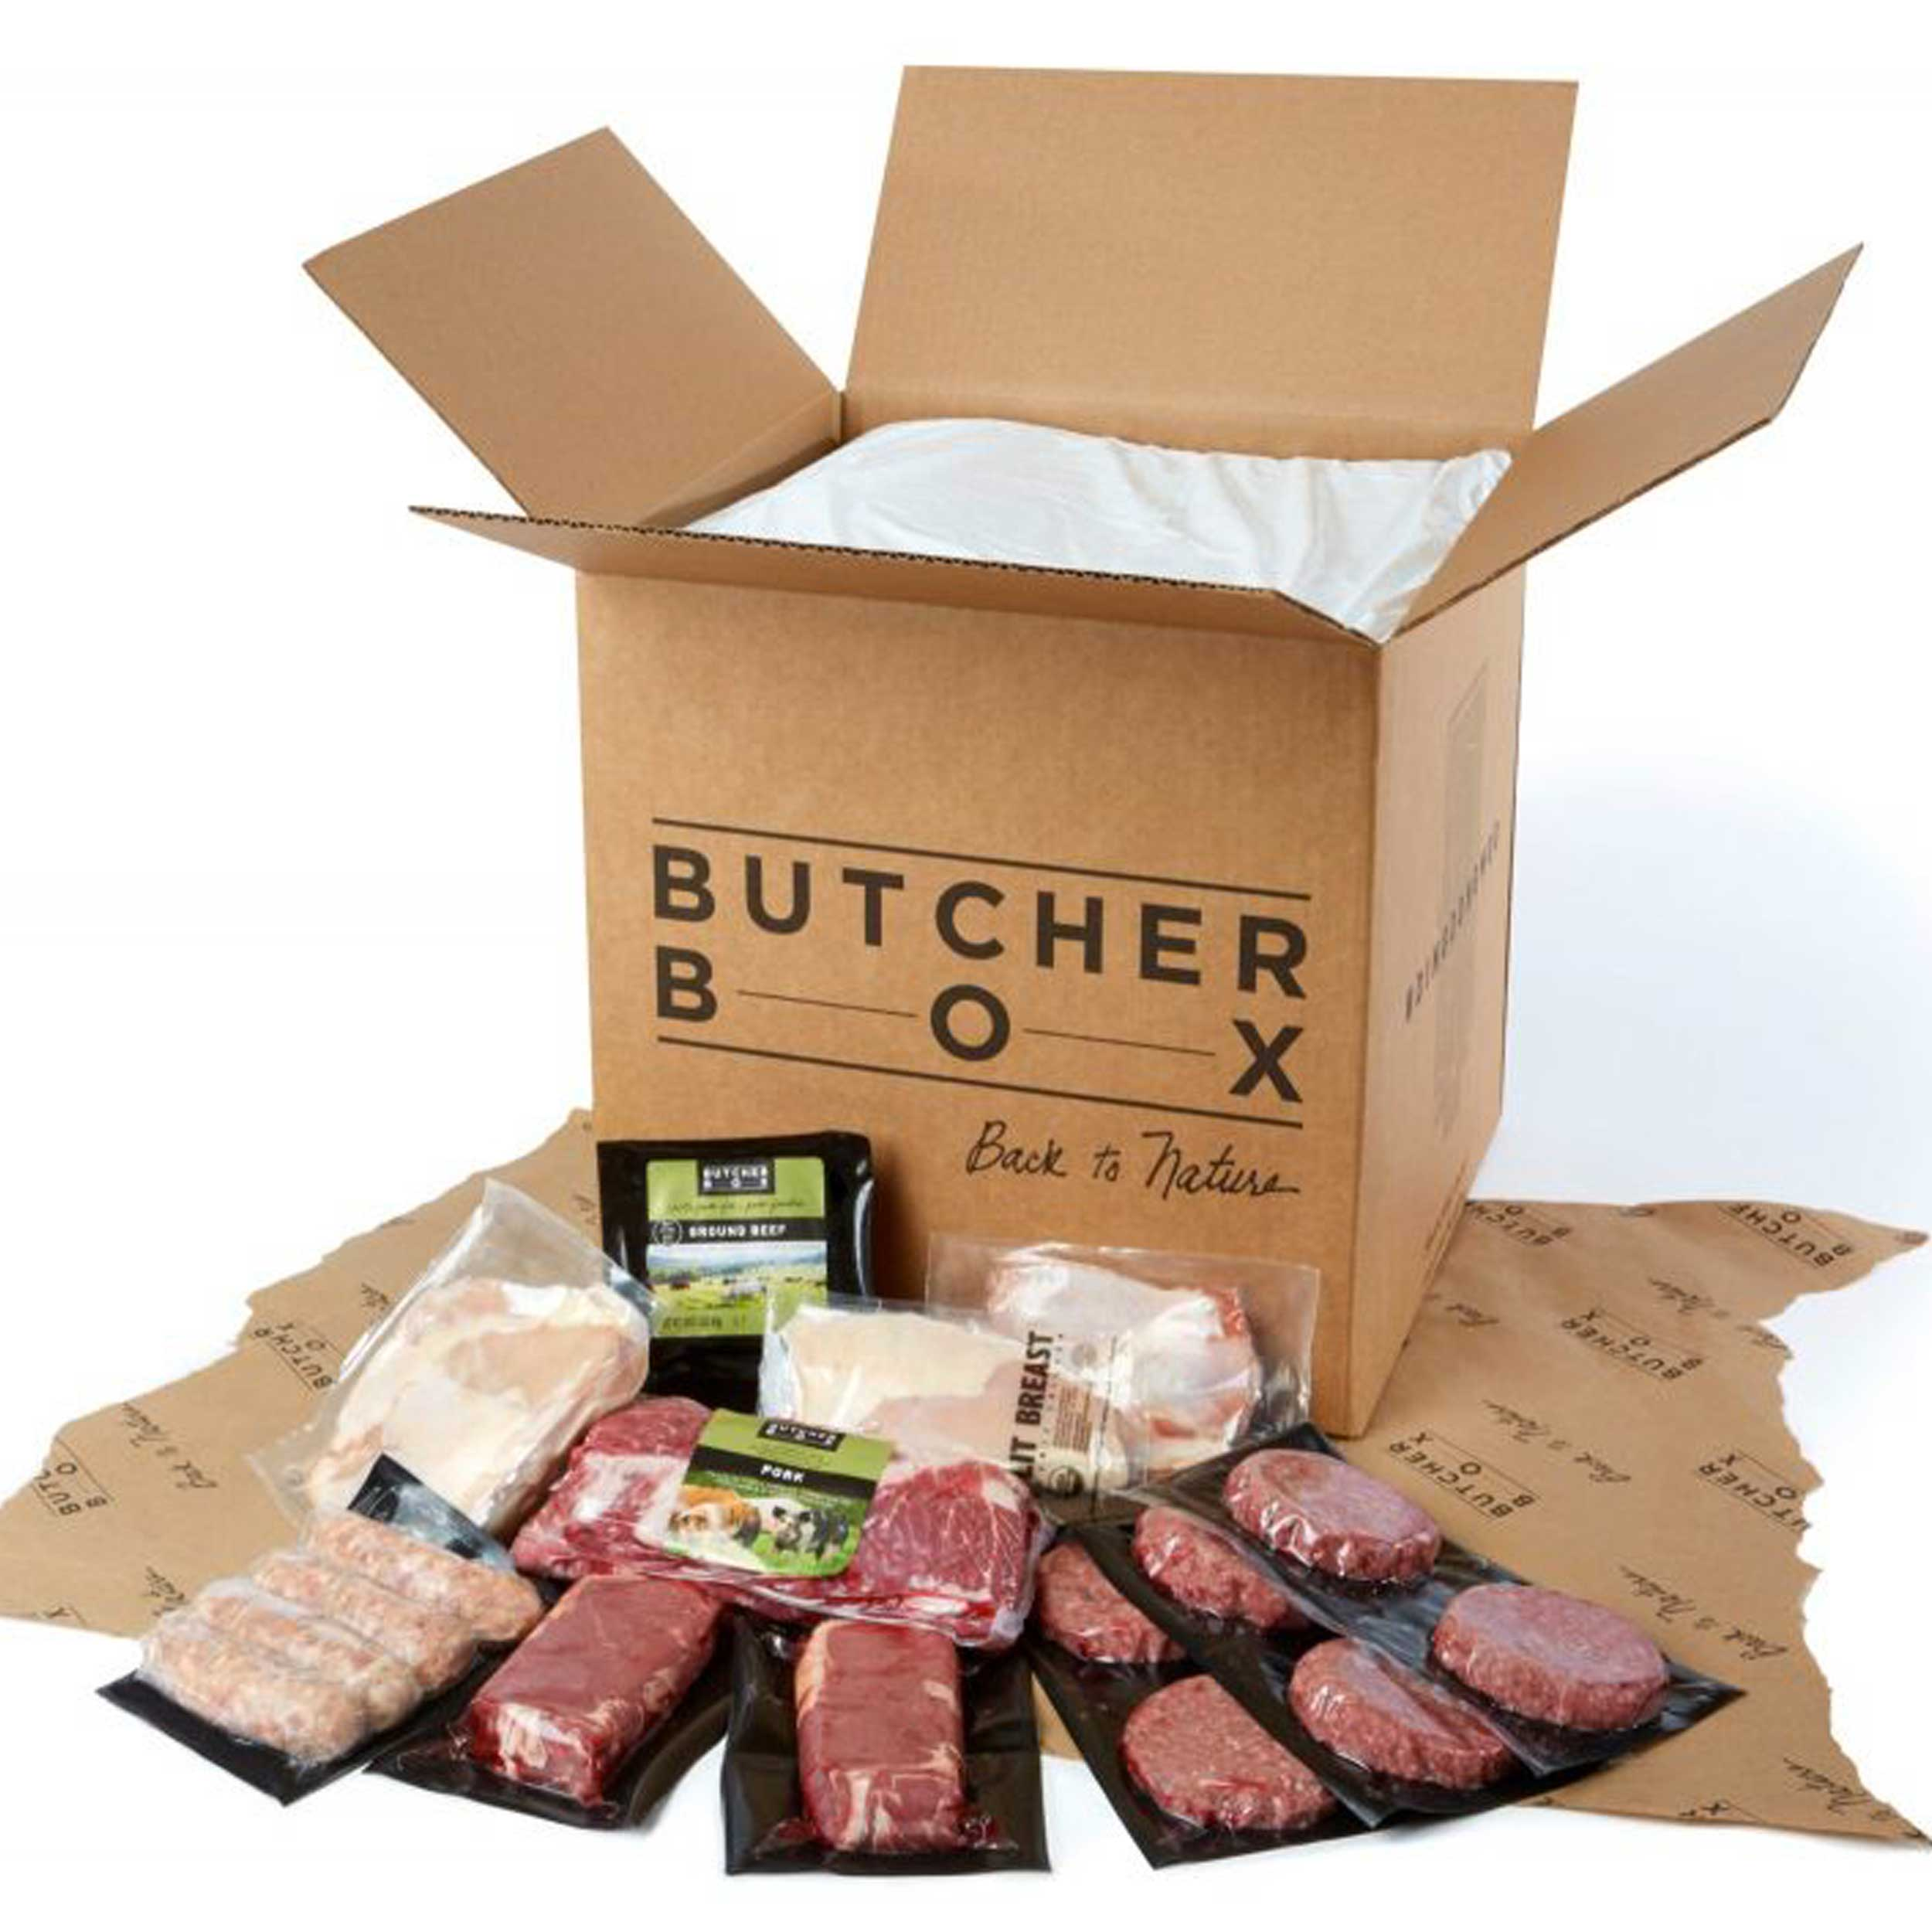 Find Your Better Butcher Box